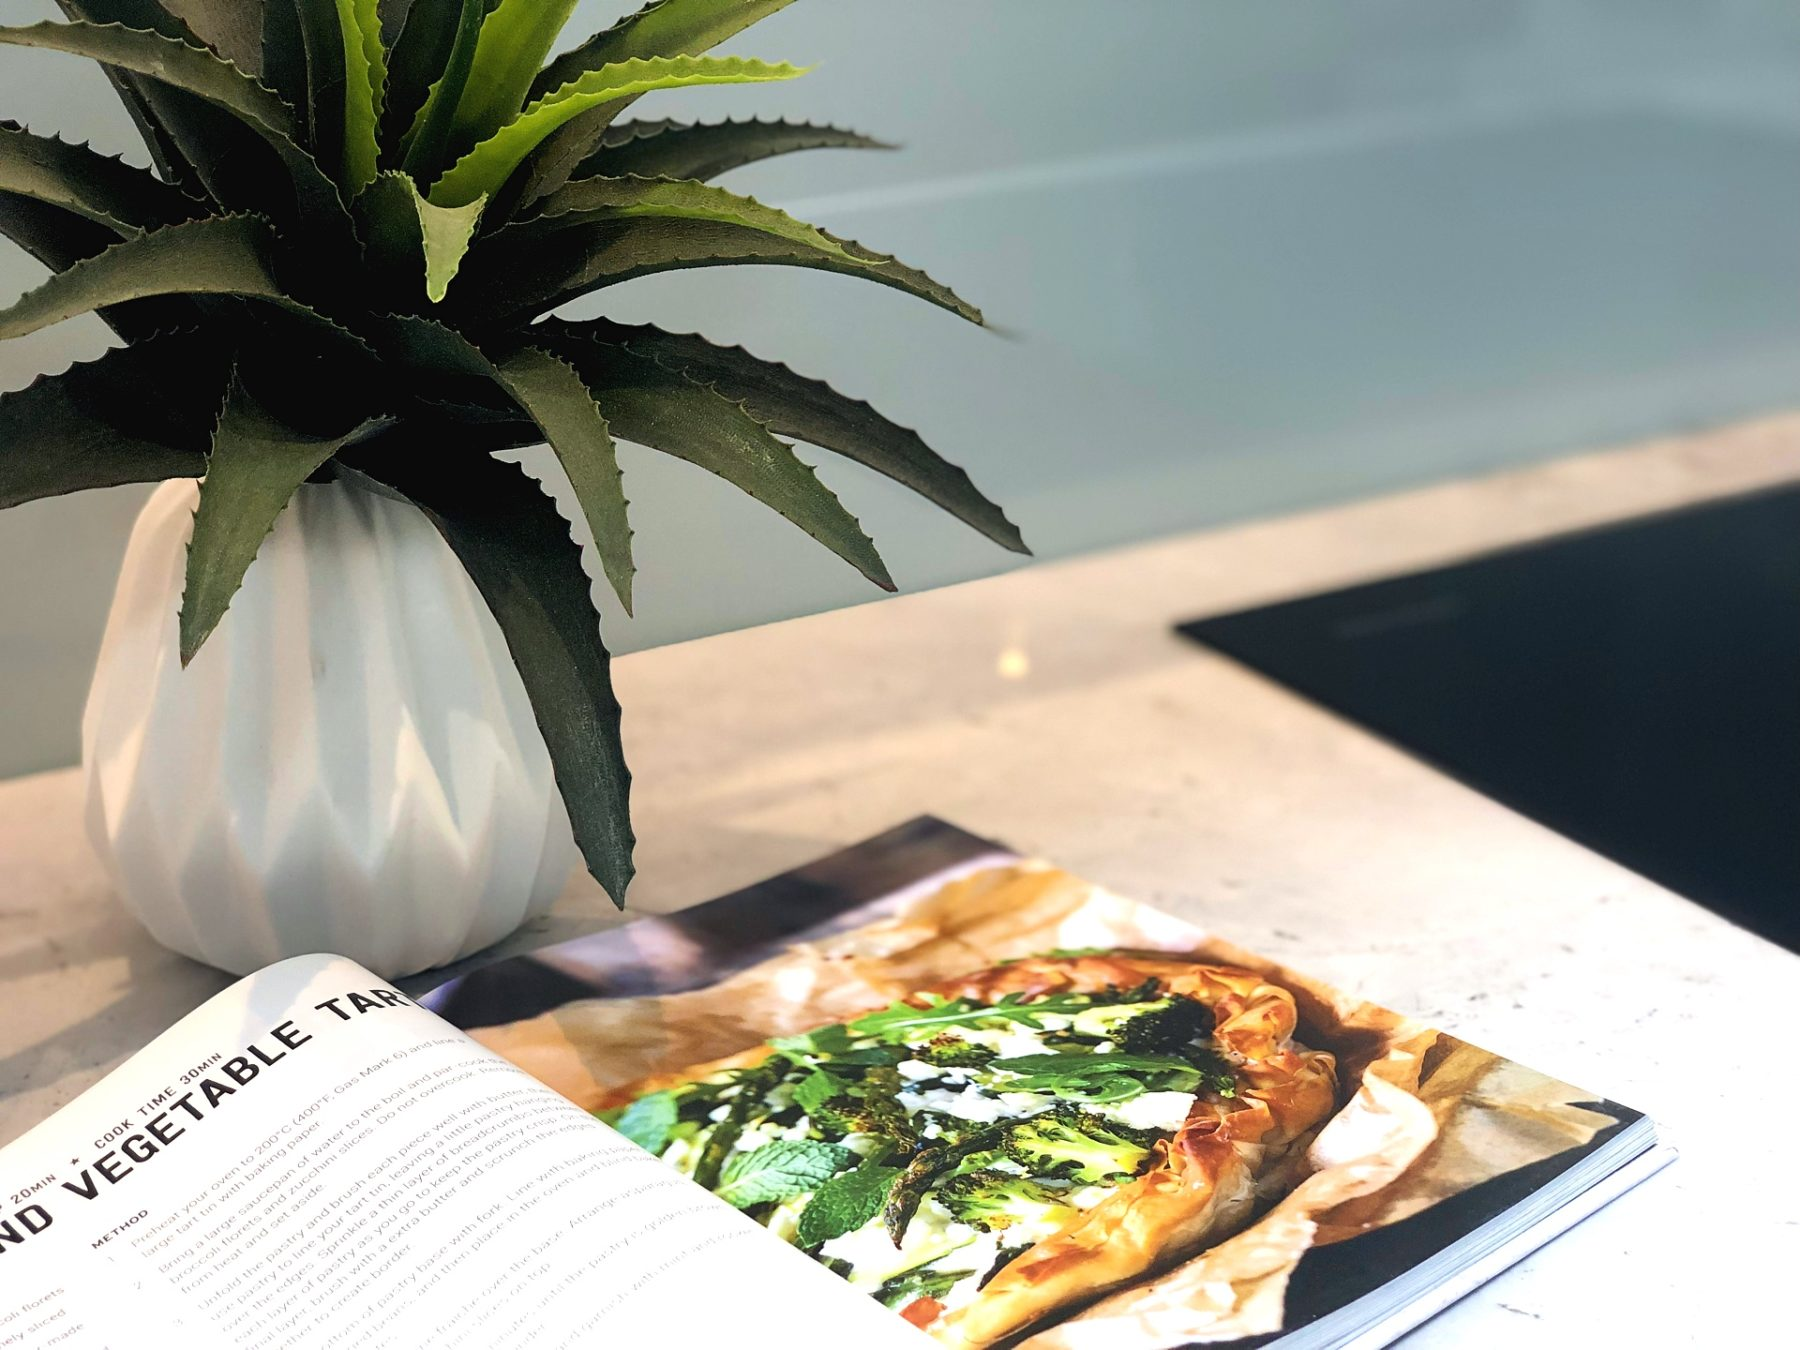 plant and cookbook on kitchen bench